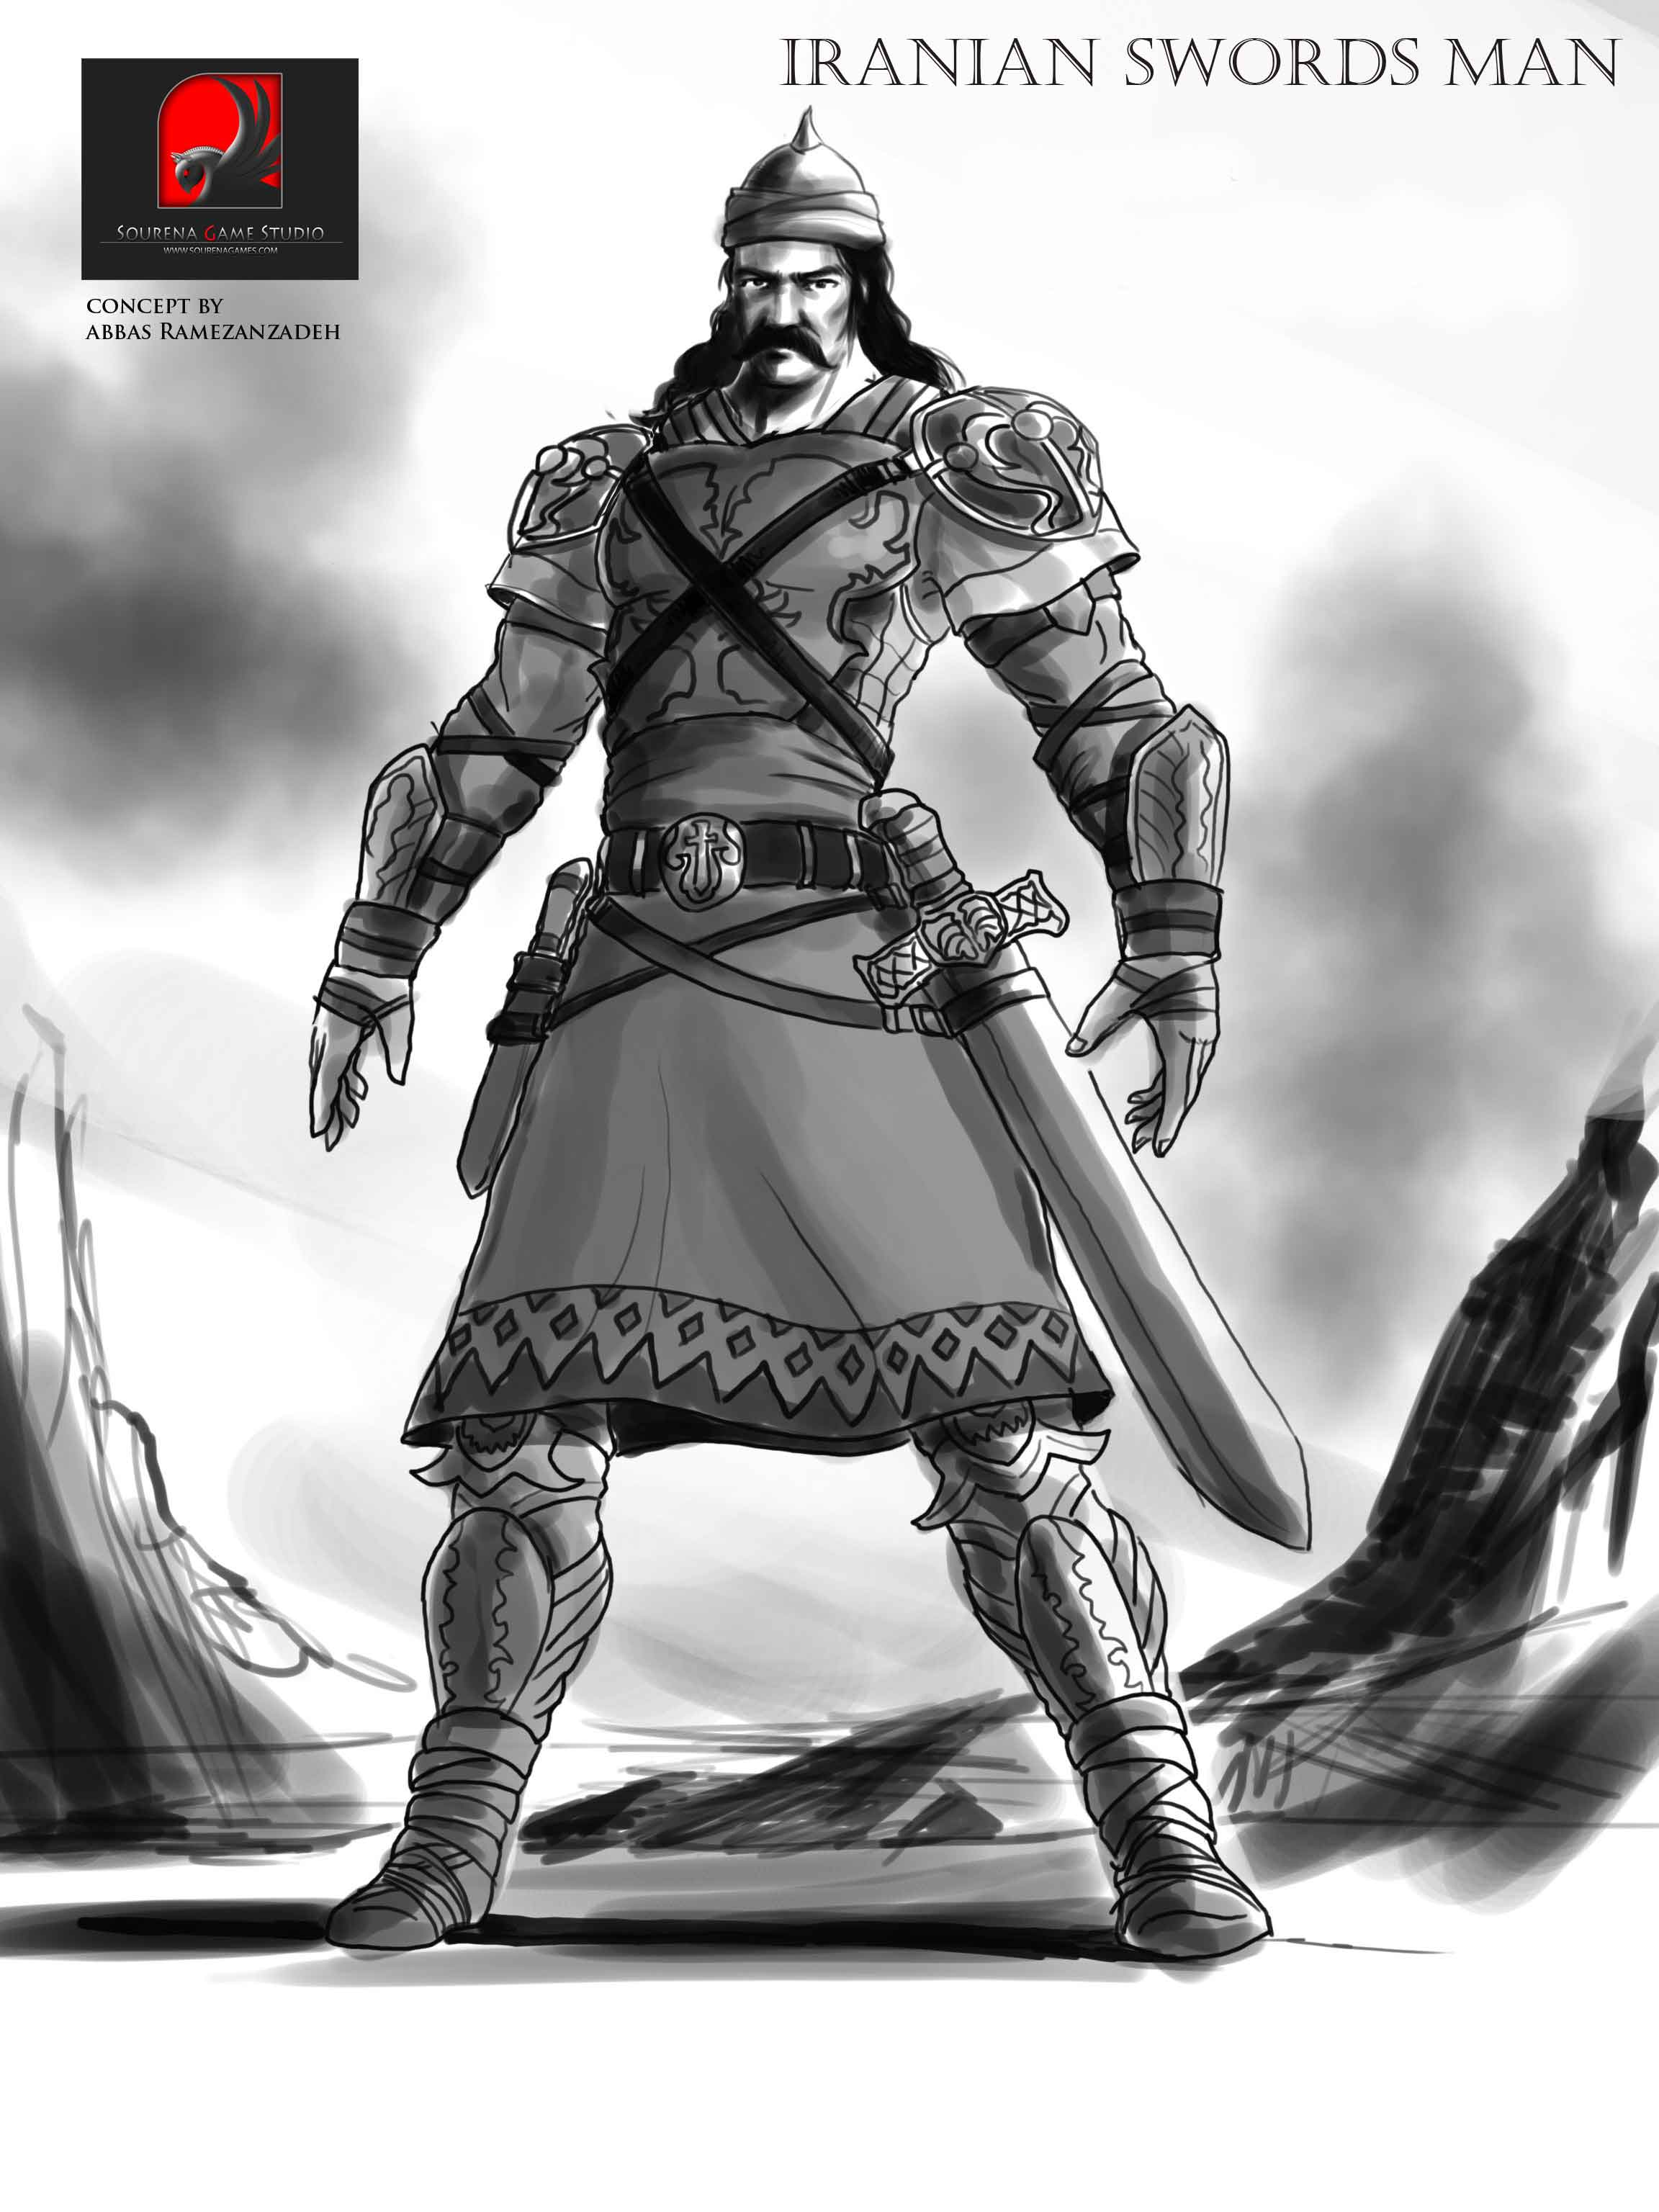 Sourena Game Studio - Iranian Swordsman